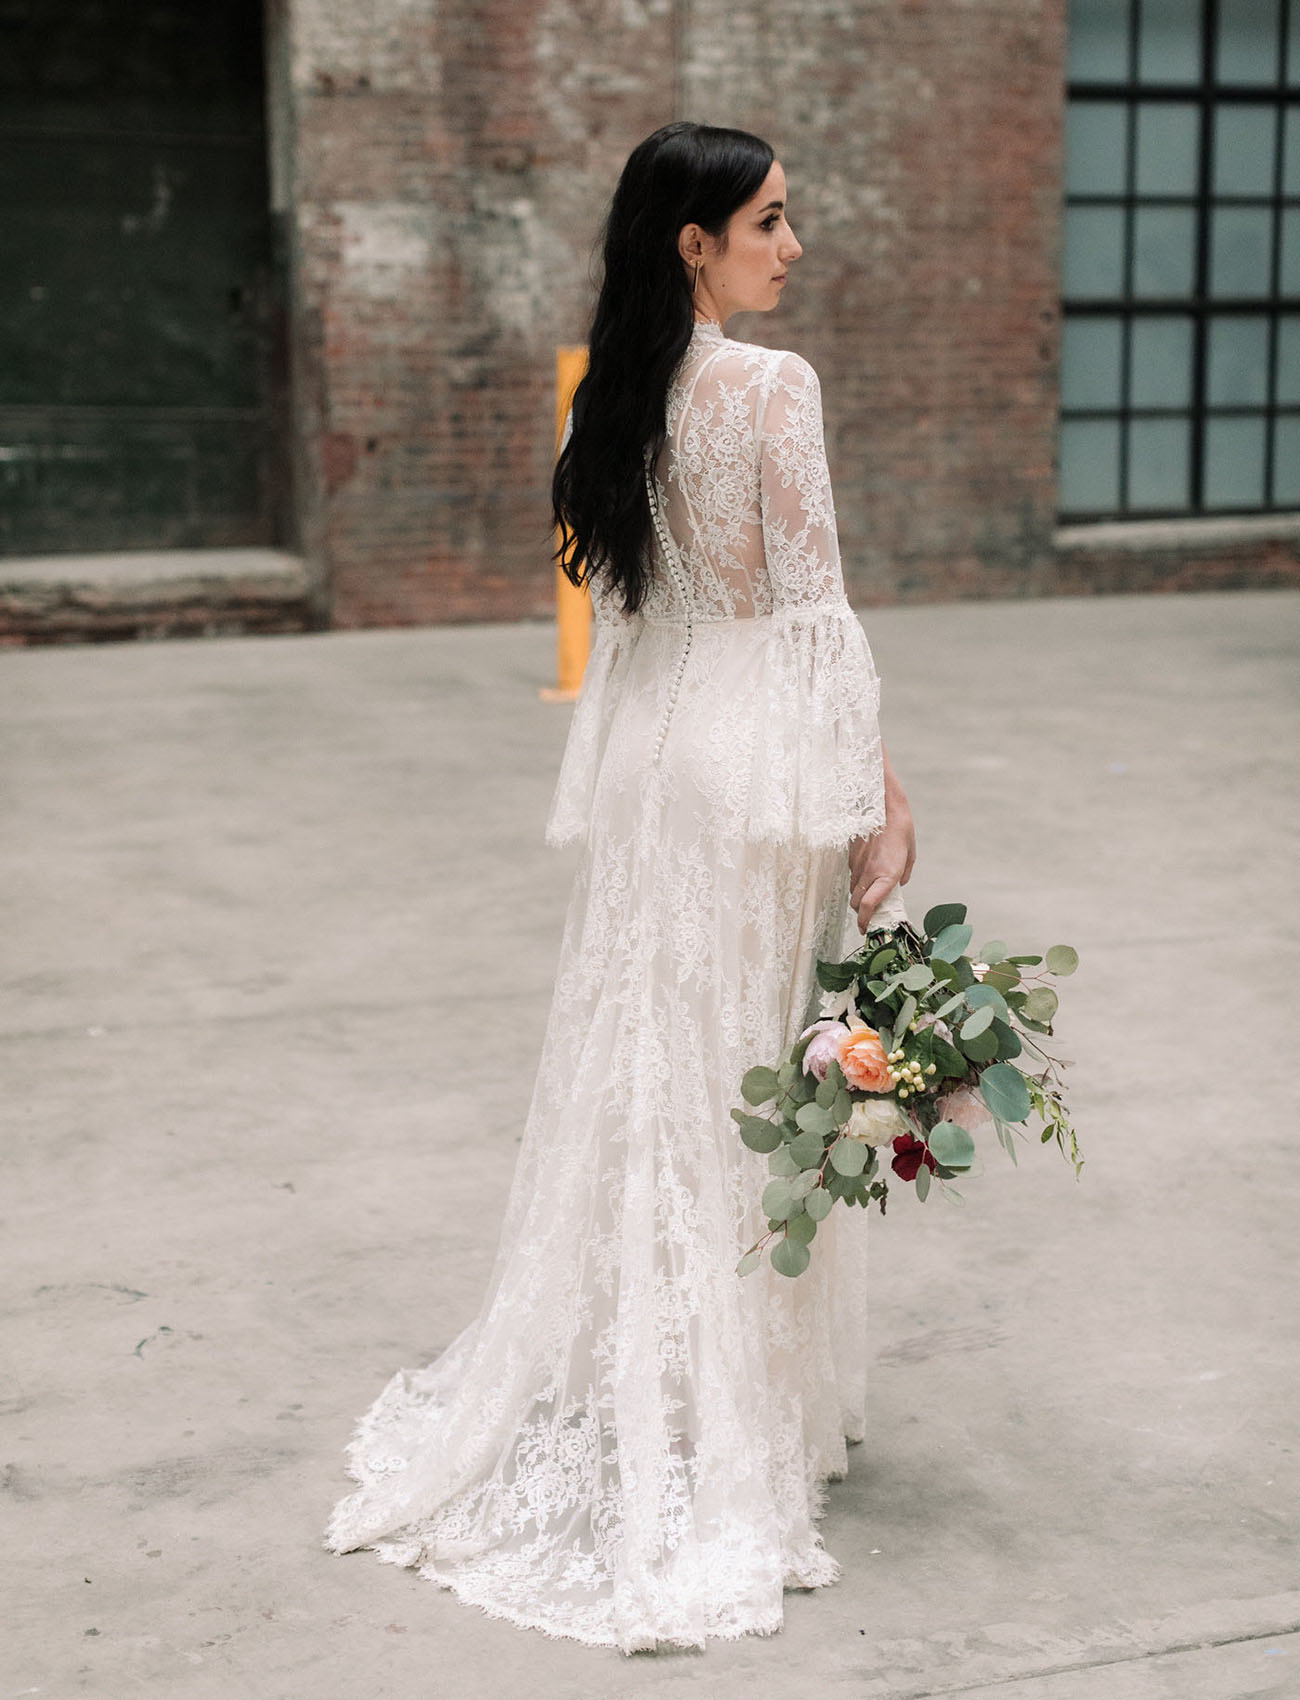 shareen wedding dress